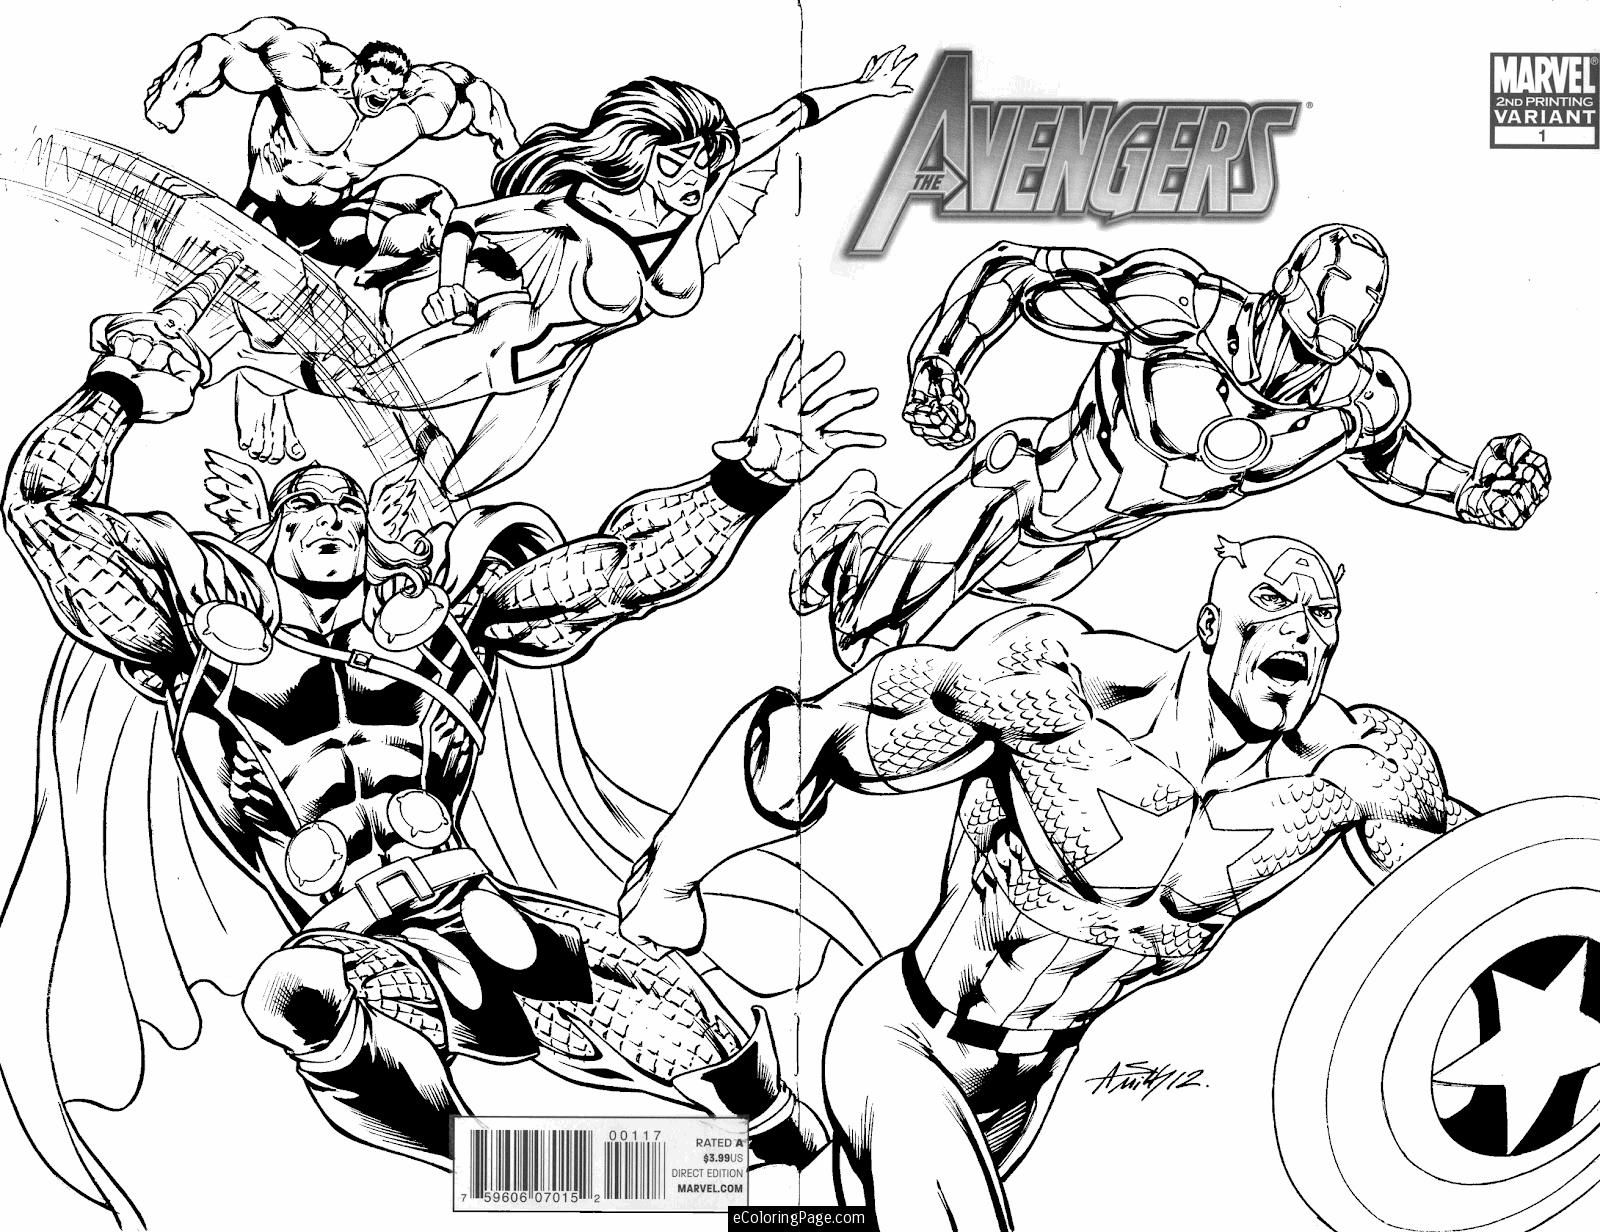 all superhero coloring pages downloadmarvel superheroes avengers action coloring page for printable - Avengers Coloring Pages